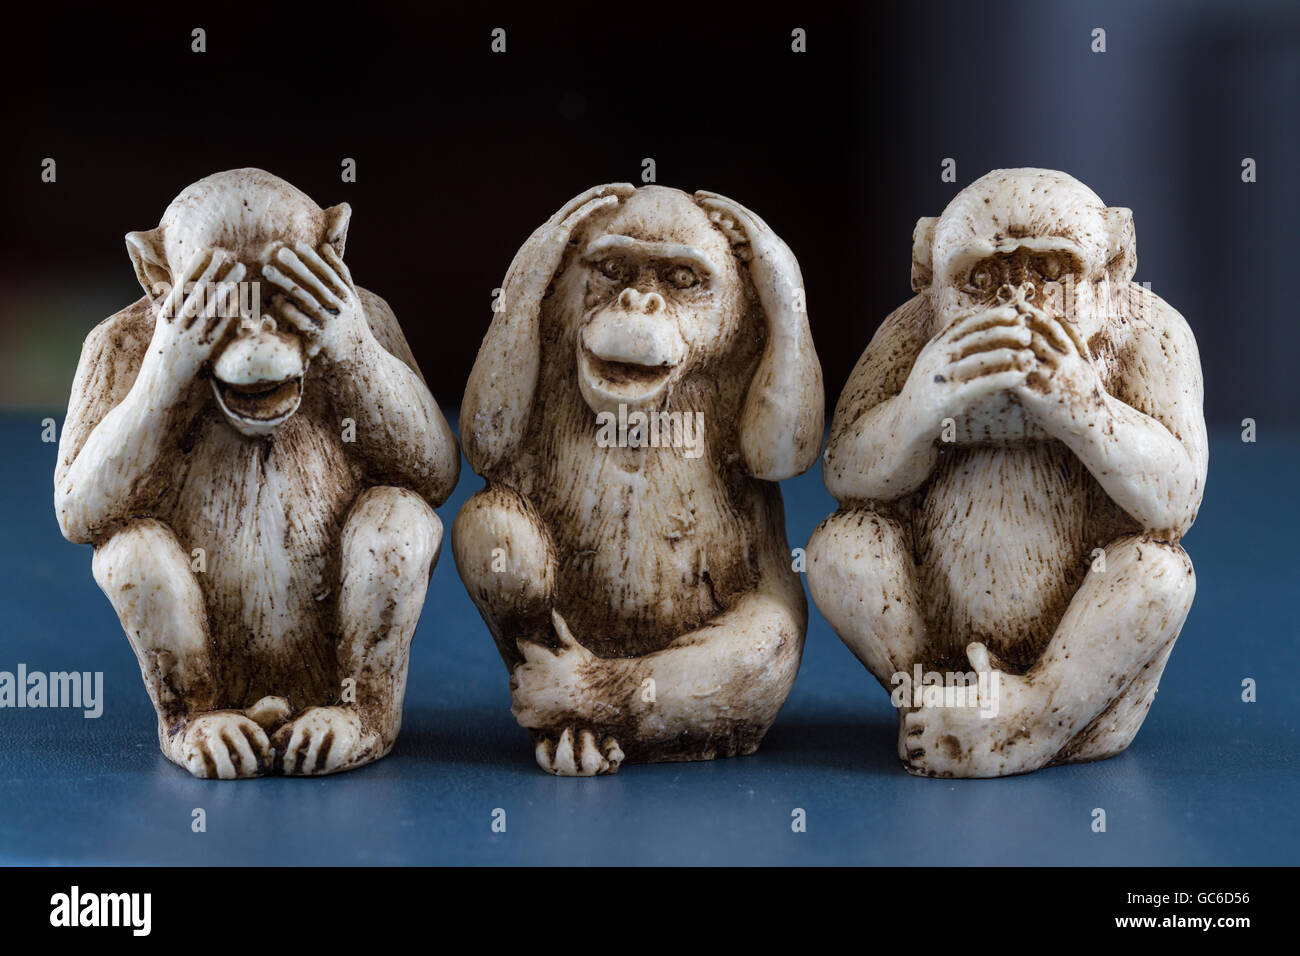 close up of hand small statues with the concept of see no evil, hear no evil and speak no evil. - Stock Image